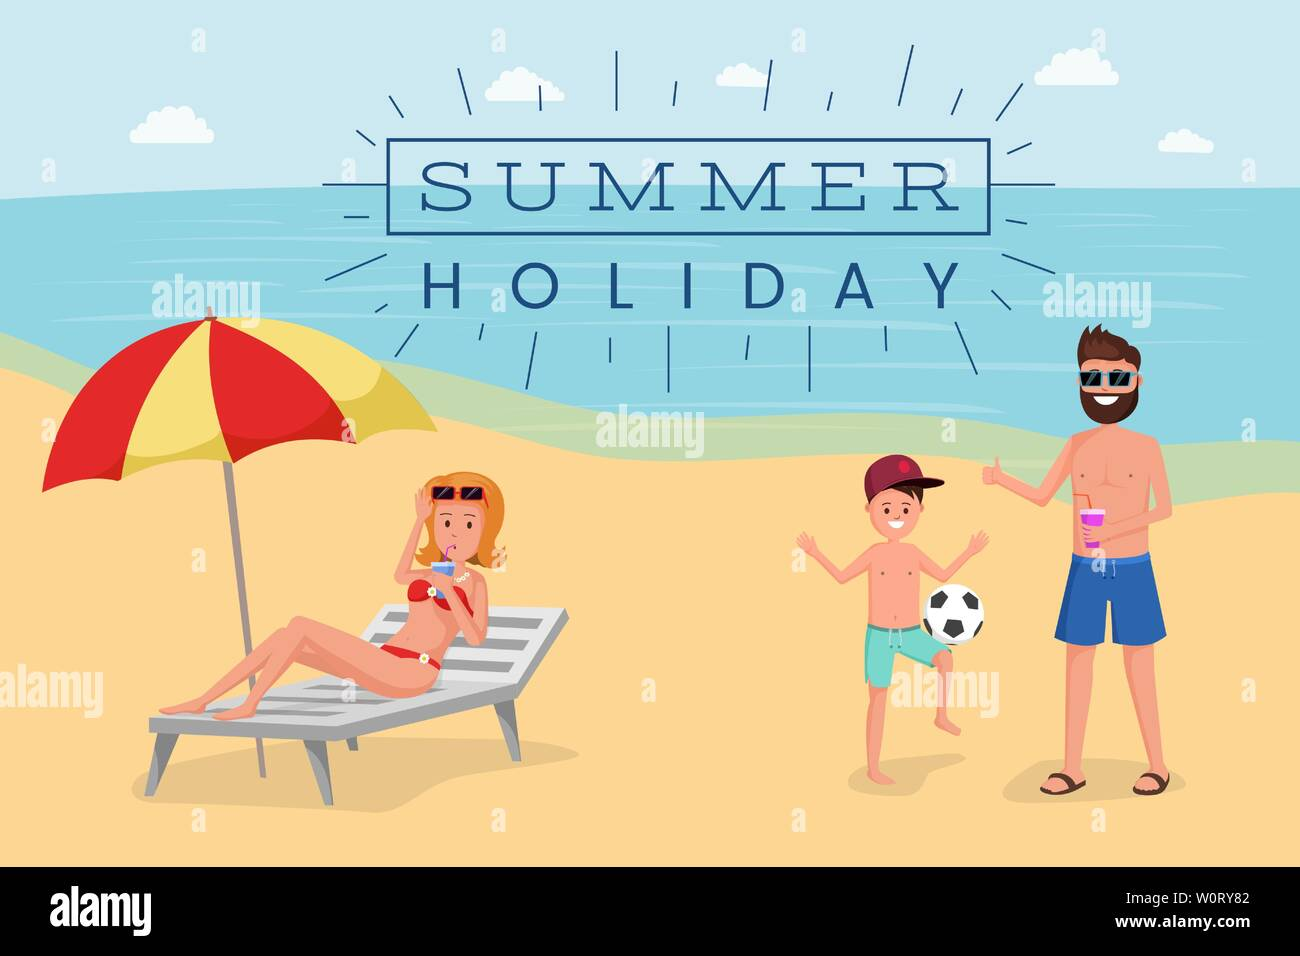 Summer holiday flat vector banner template. Cartoon tourist sunbathing on beach, playing ball game, woman on deck chair drinking cocktail. Seaside resort for family weekend advertising poster layout Stock Vector